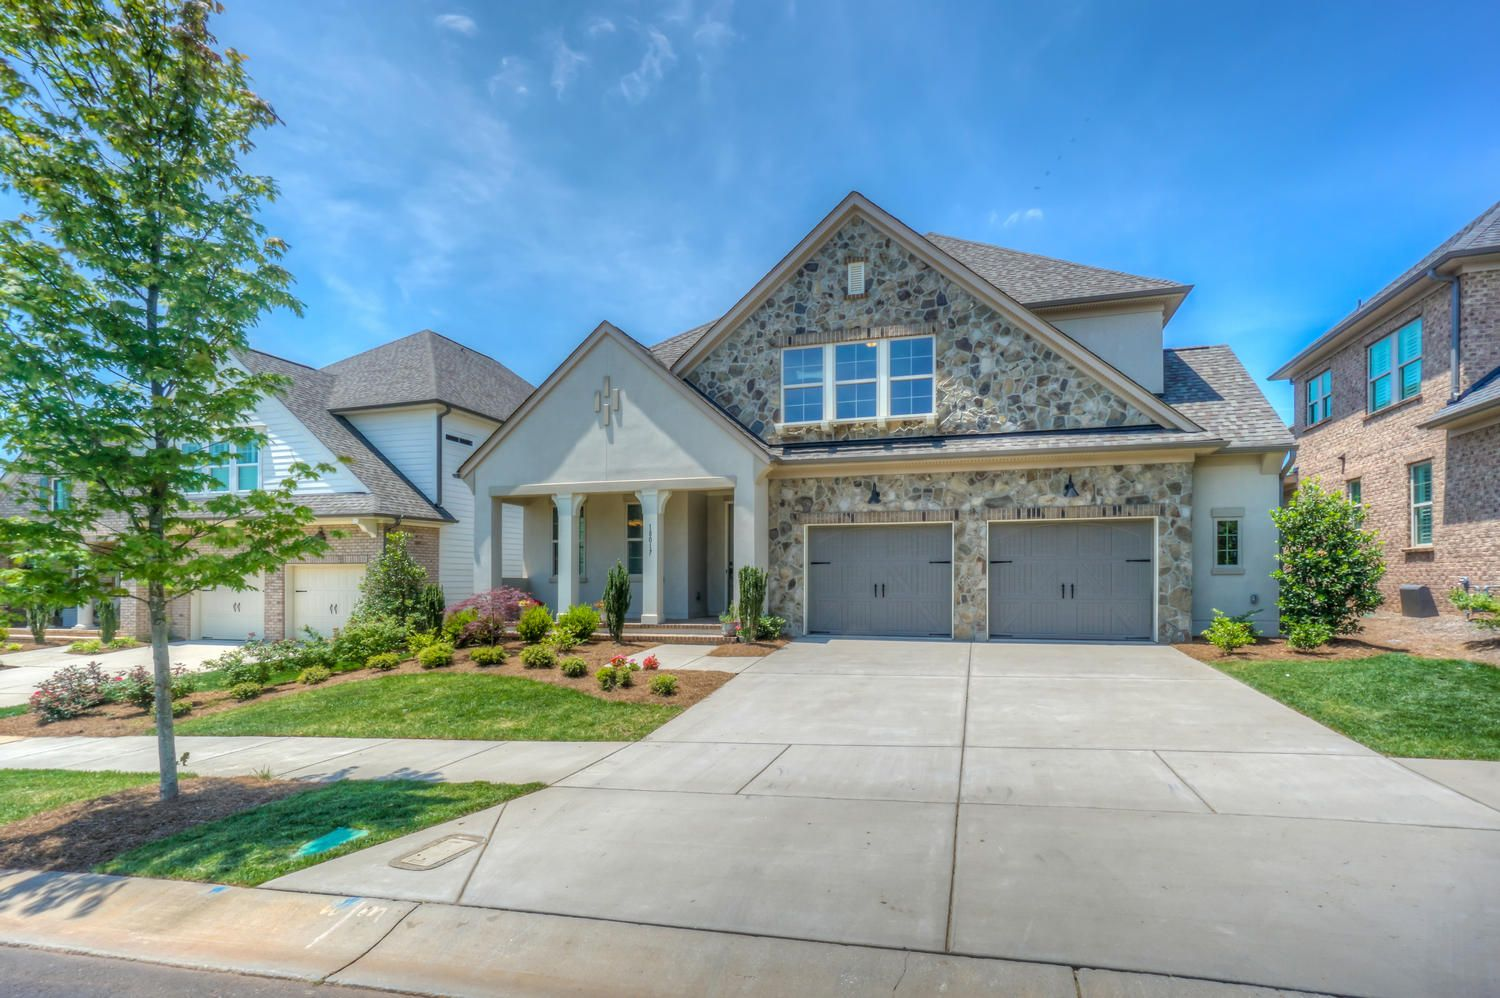 New price on beautiful 4bd home in robbins park http